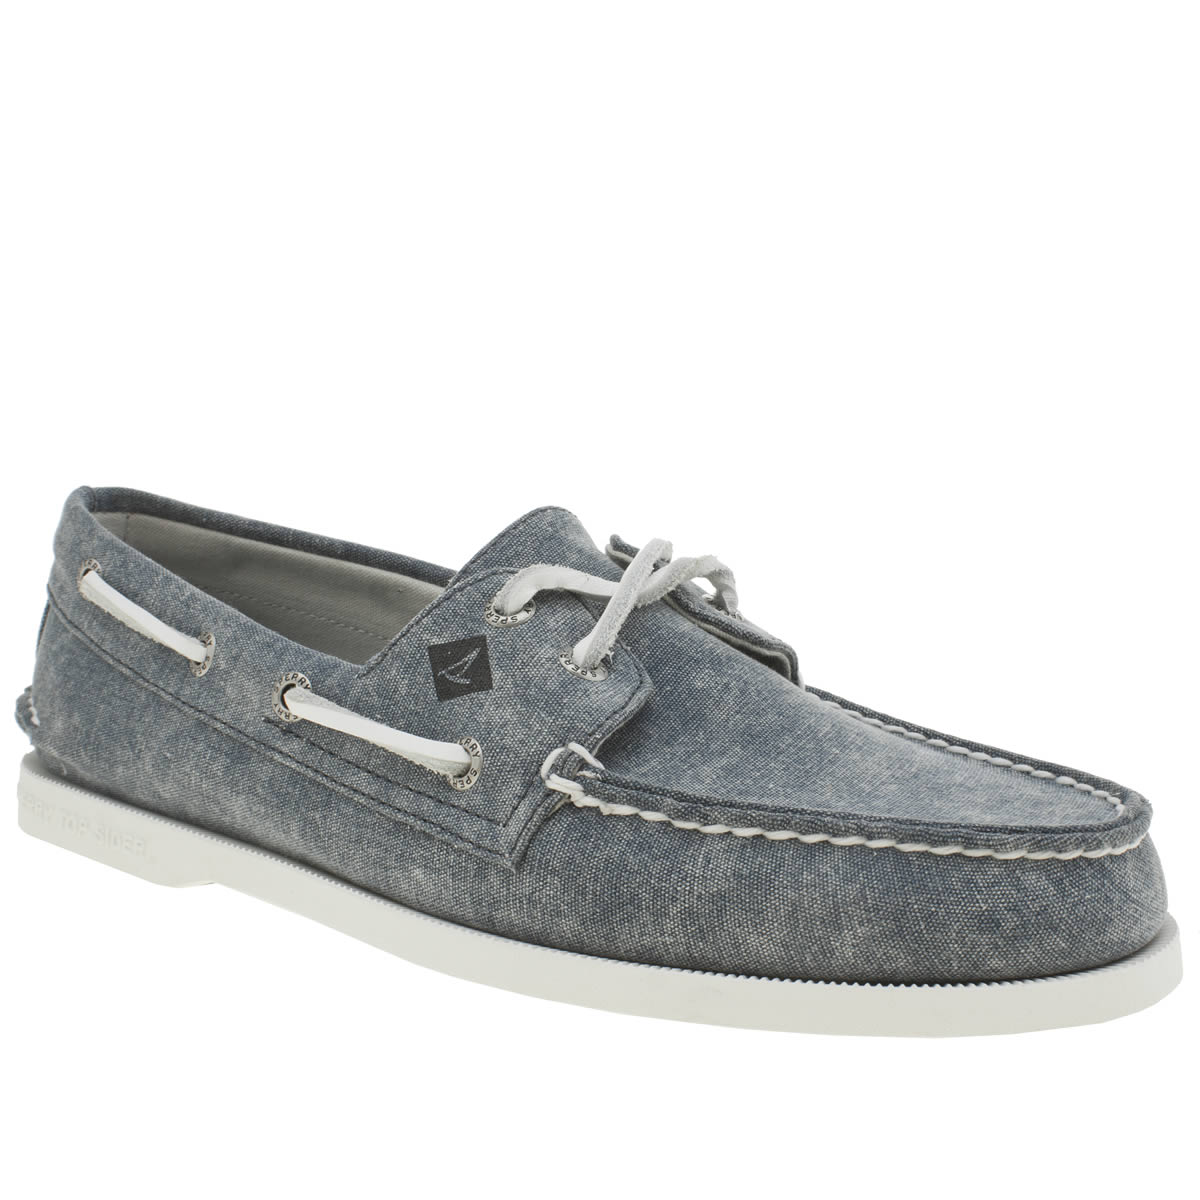 Sperry Sperry Navy A/o 2 Eye White Cap Shoes